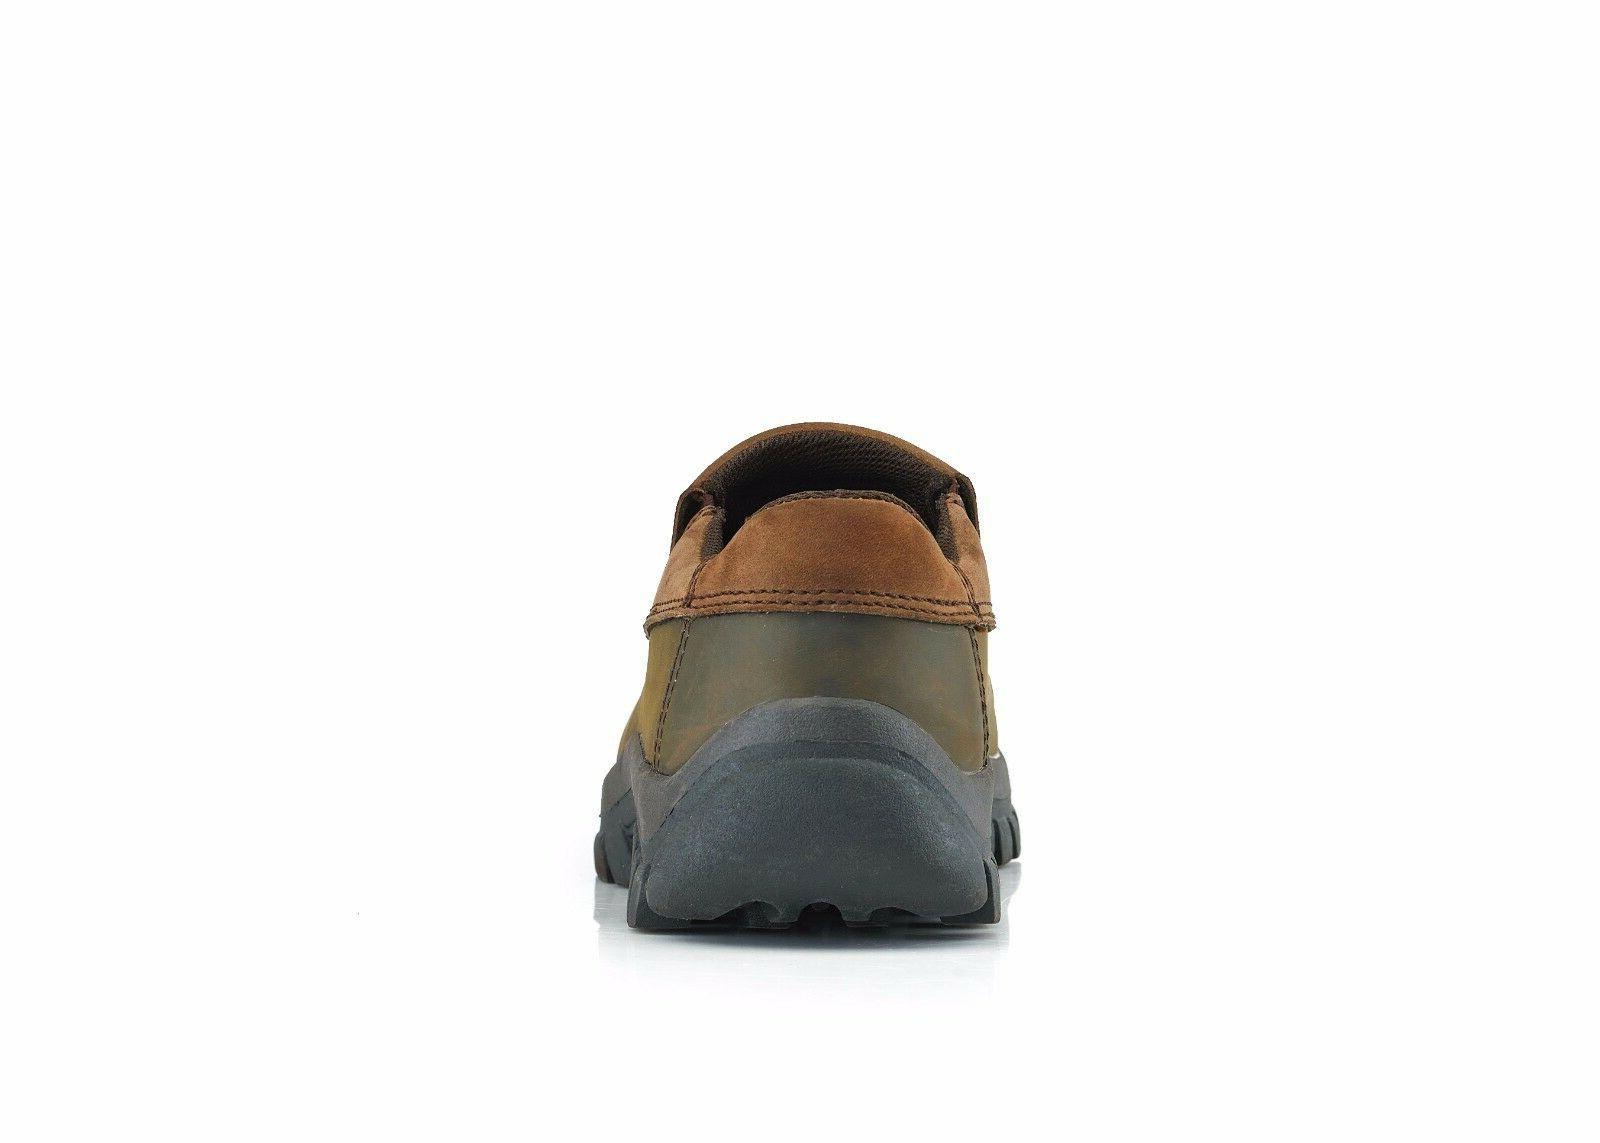 KINGSHOW 1520 Resistance Work Boots